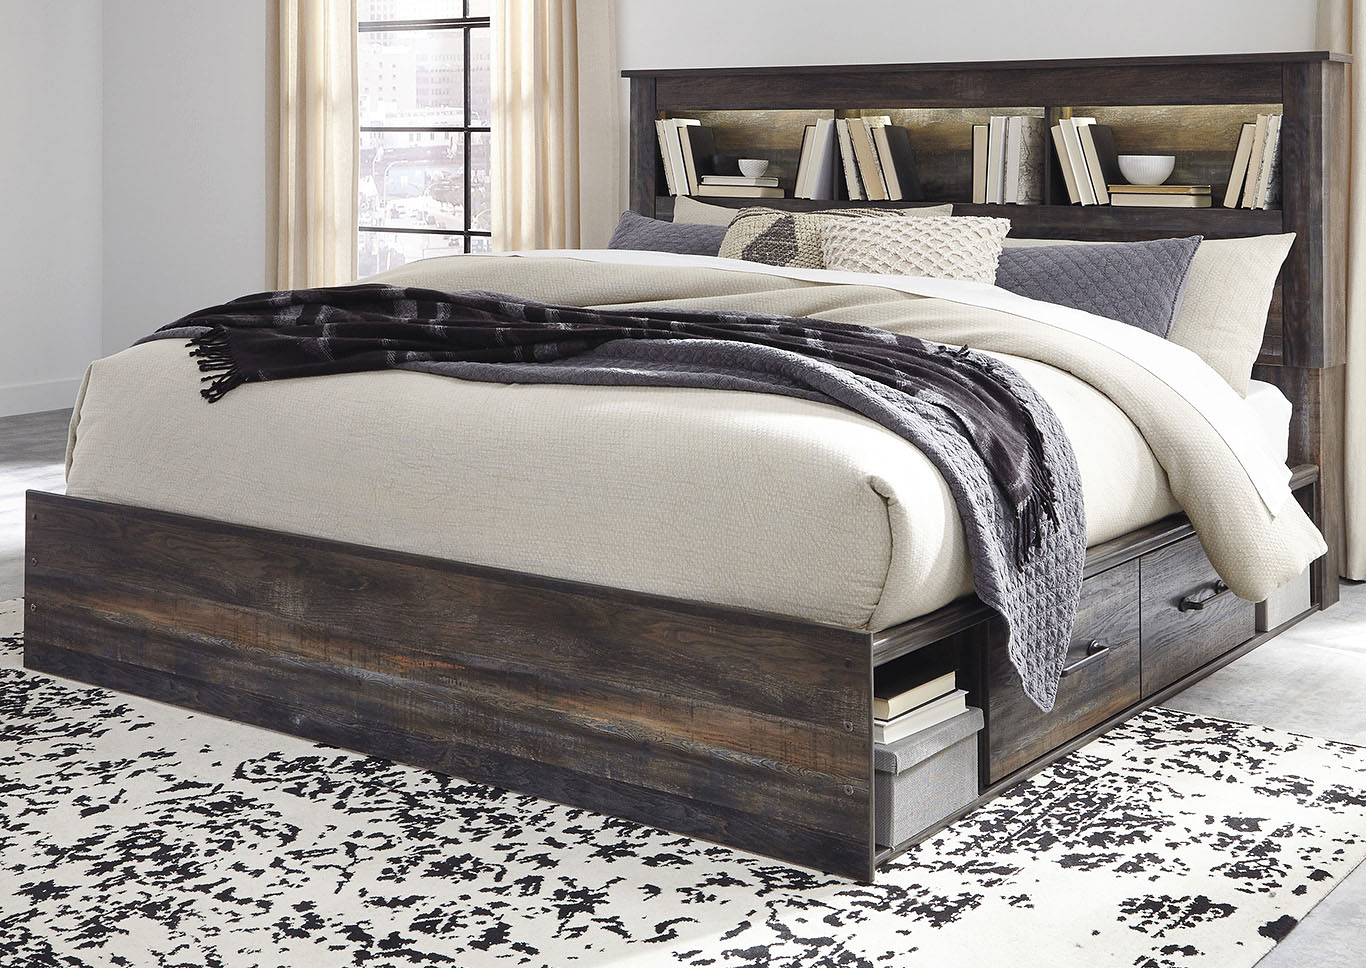 Drystan Bookcase King Side Storage Bed,Signature Design By Ashley